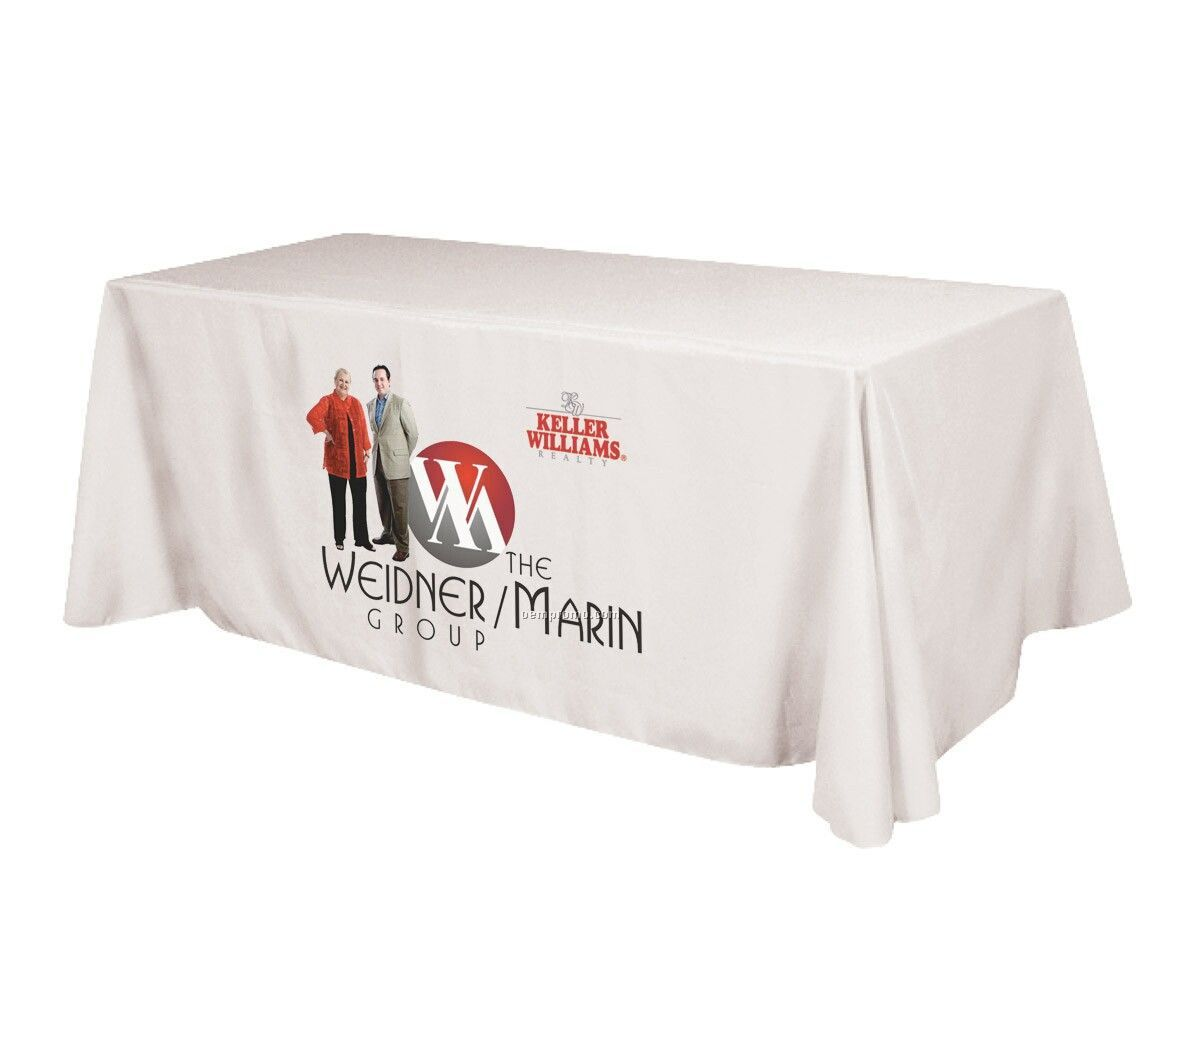 Polyester Table Cover On 3 Sides With Open Back And Dye Sub Imprint - 6'